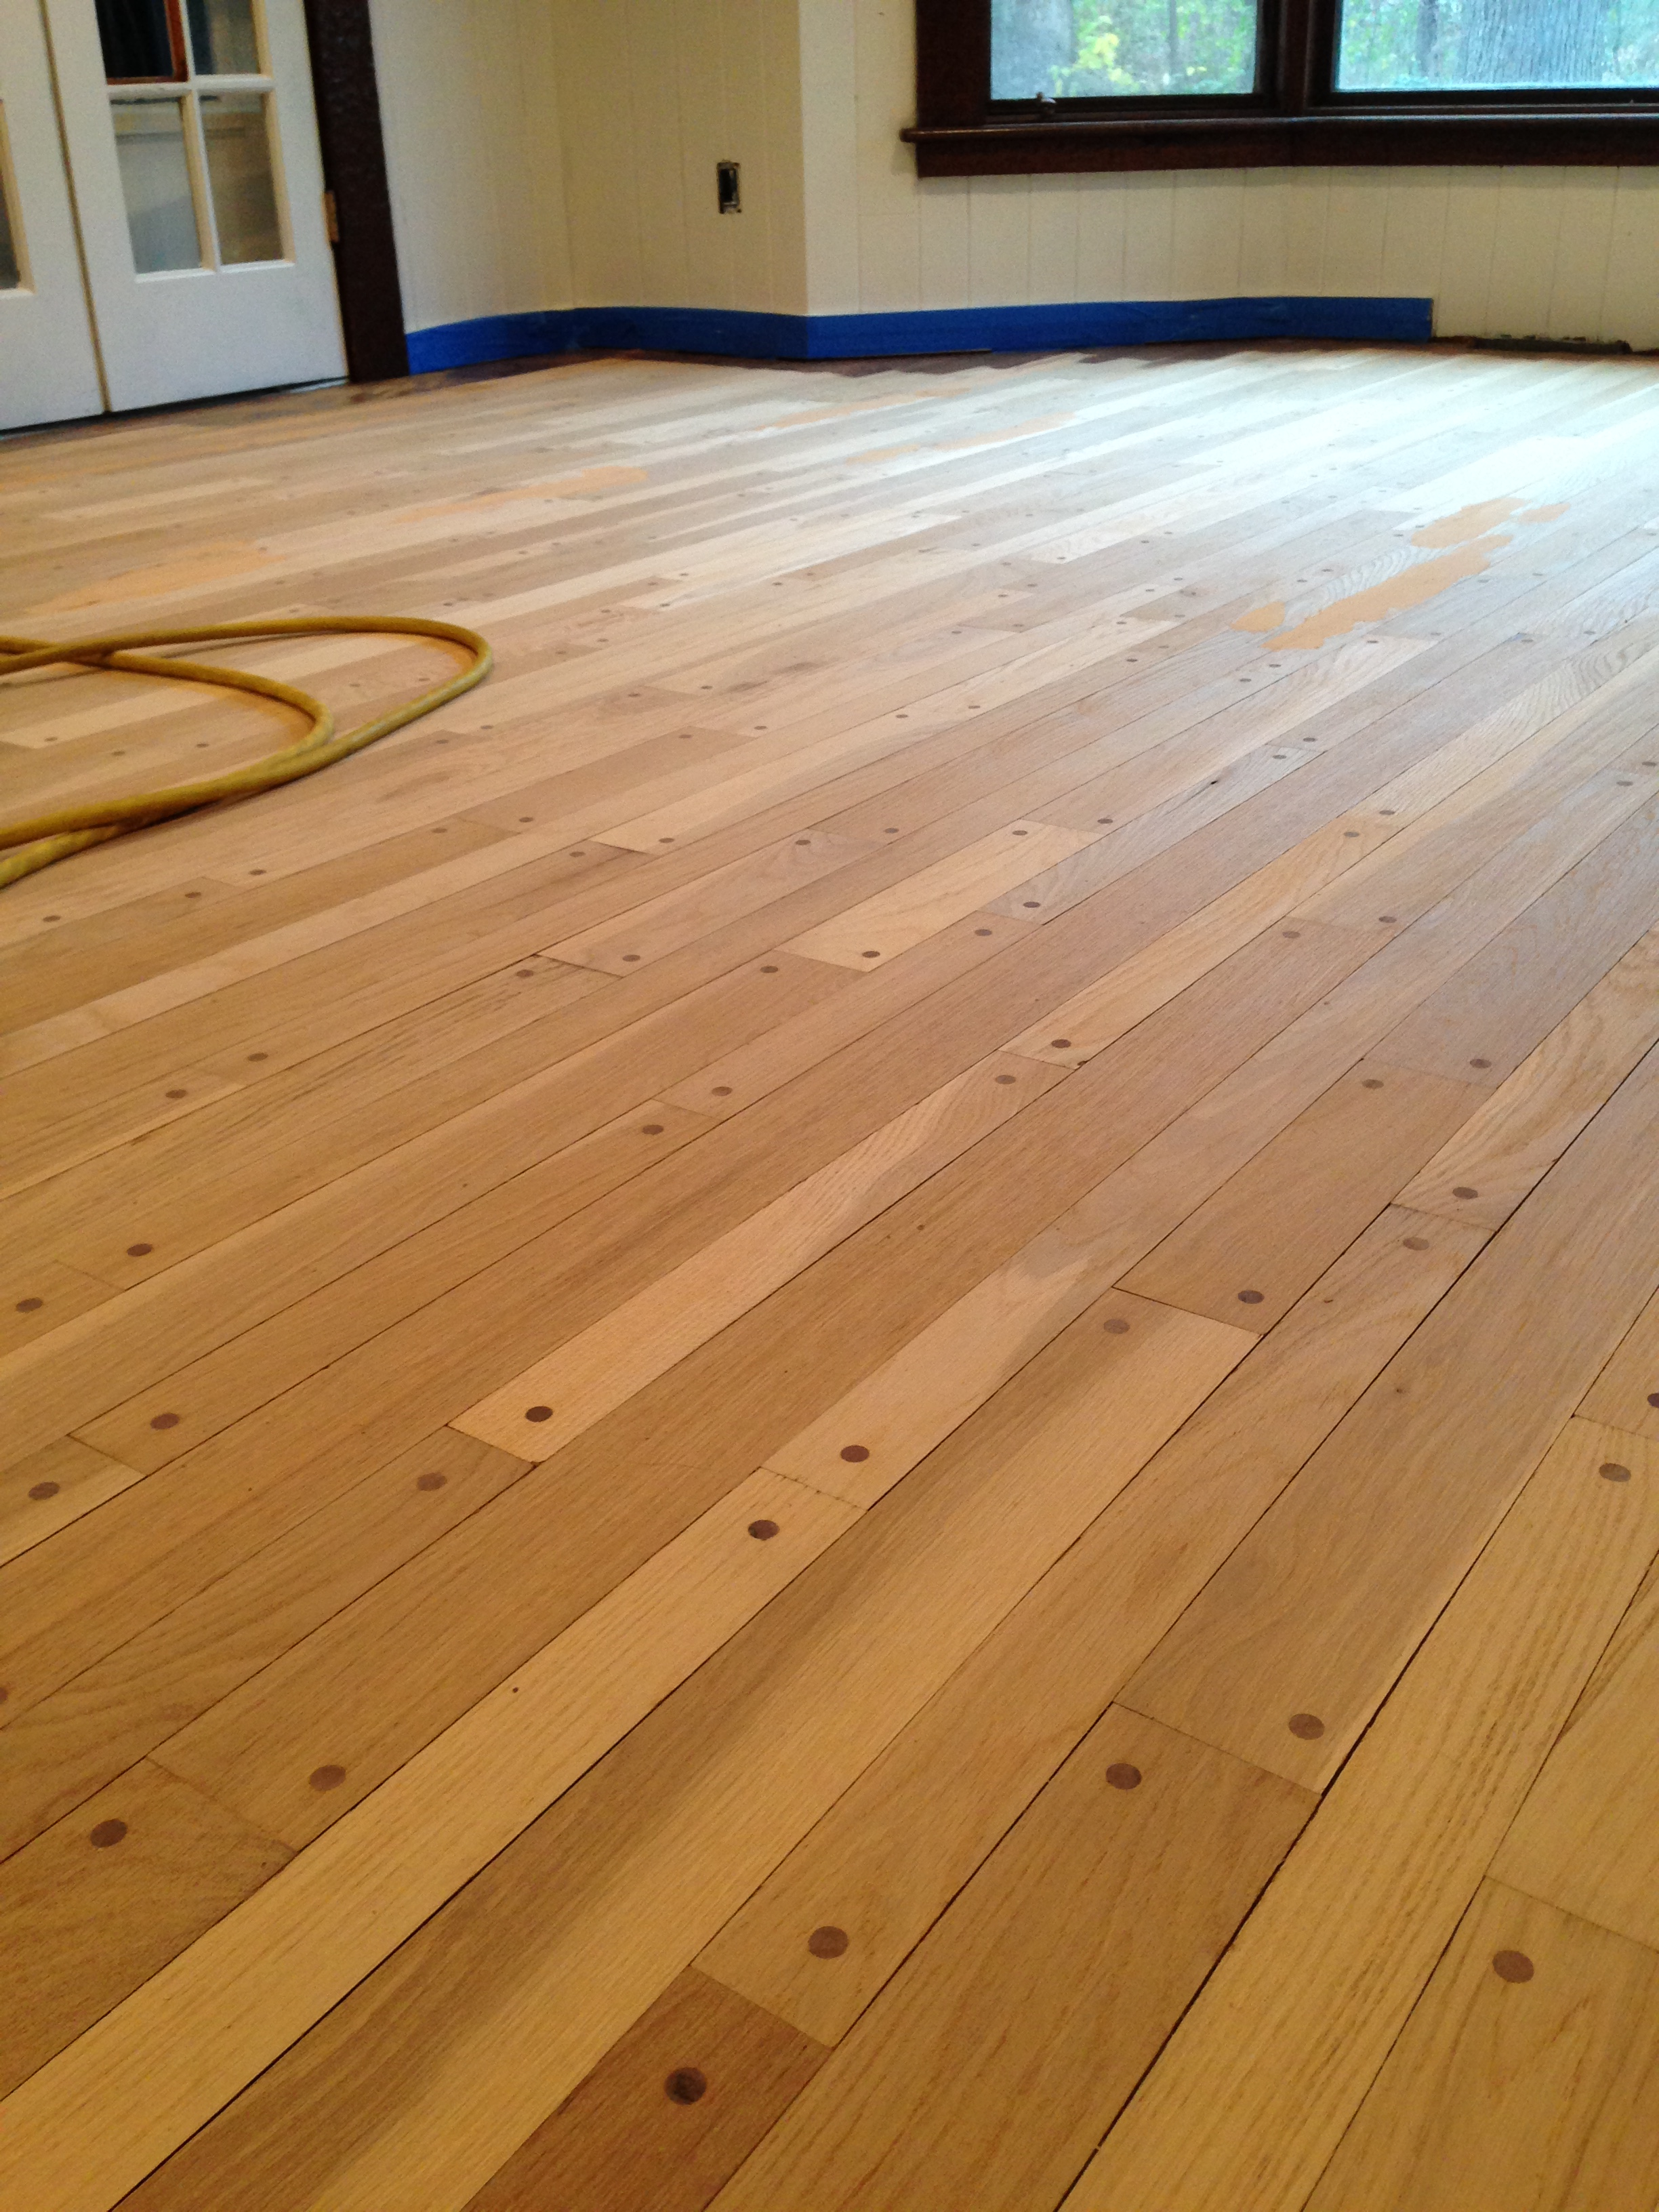 Alternate Sized Planks add wonderful variety to a living room.